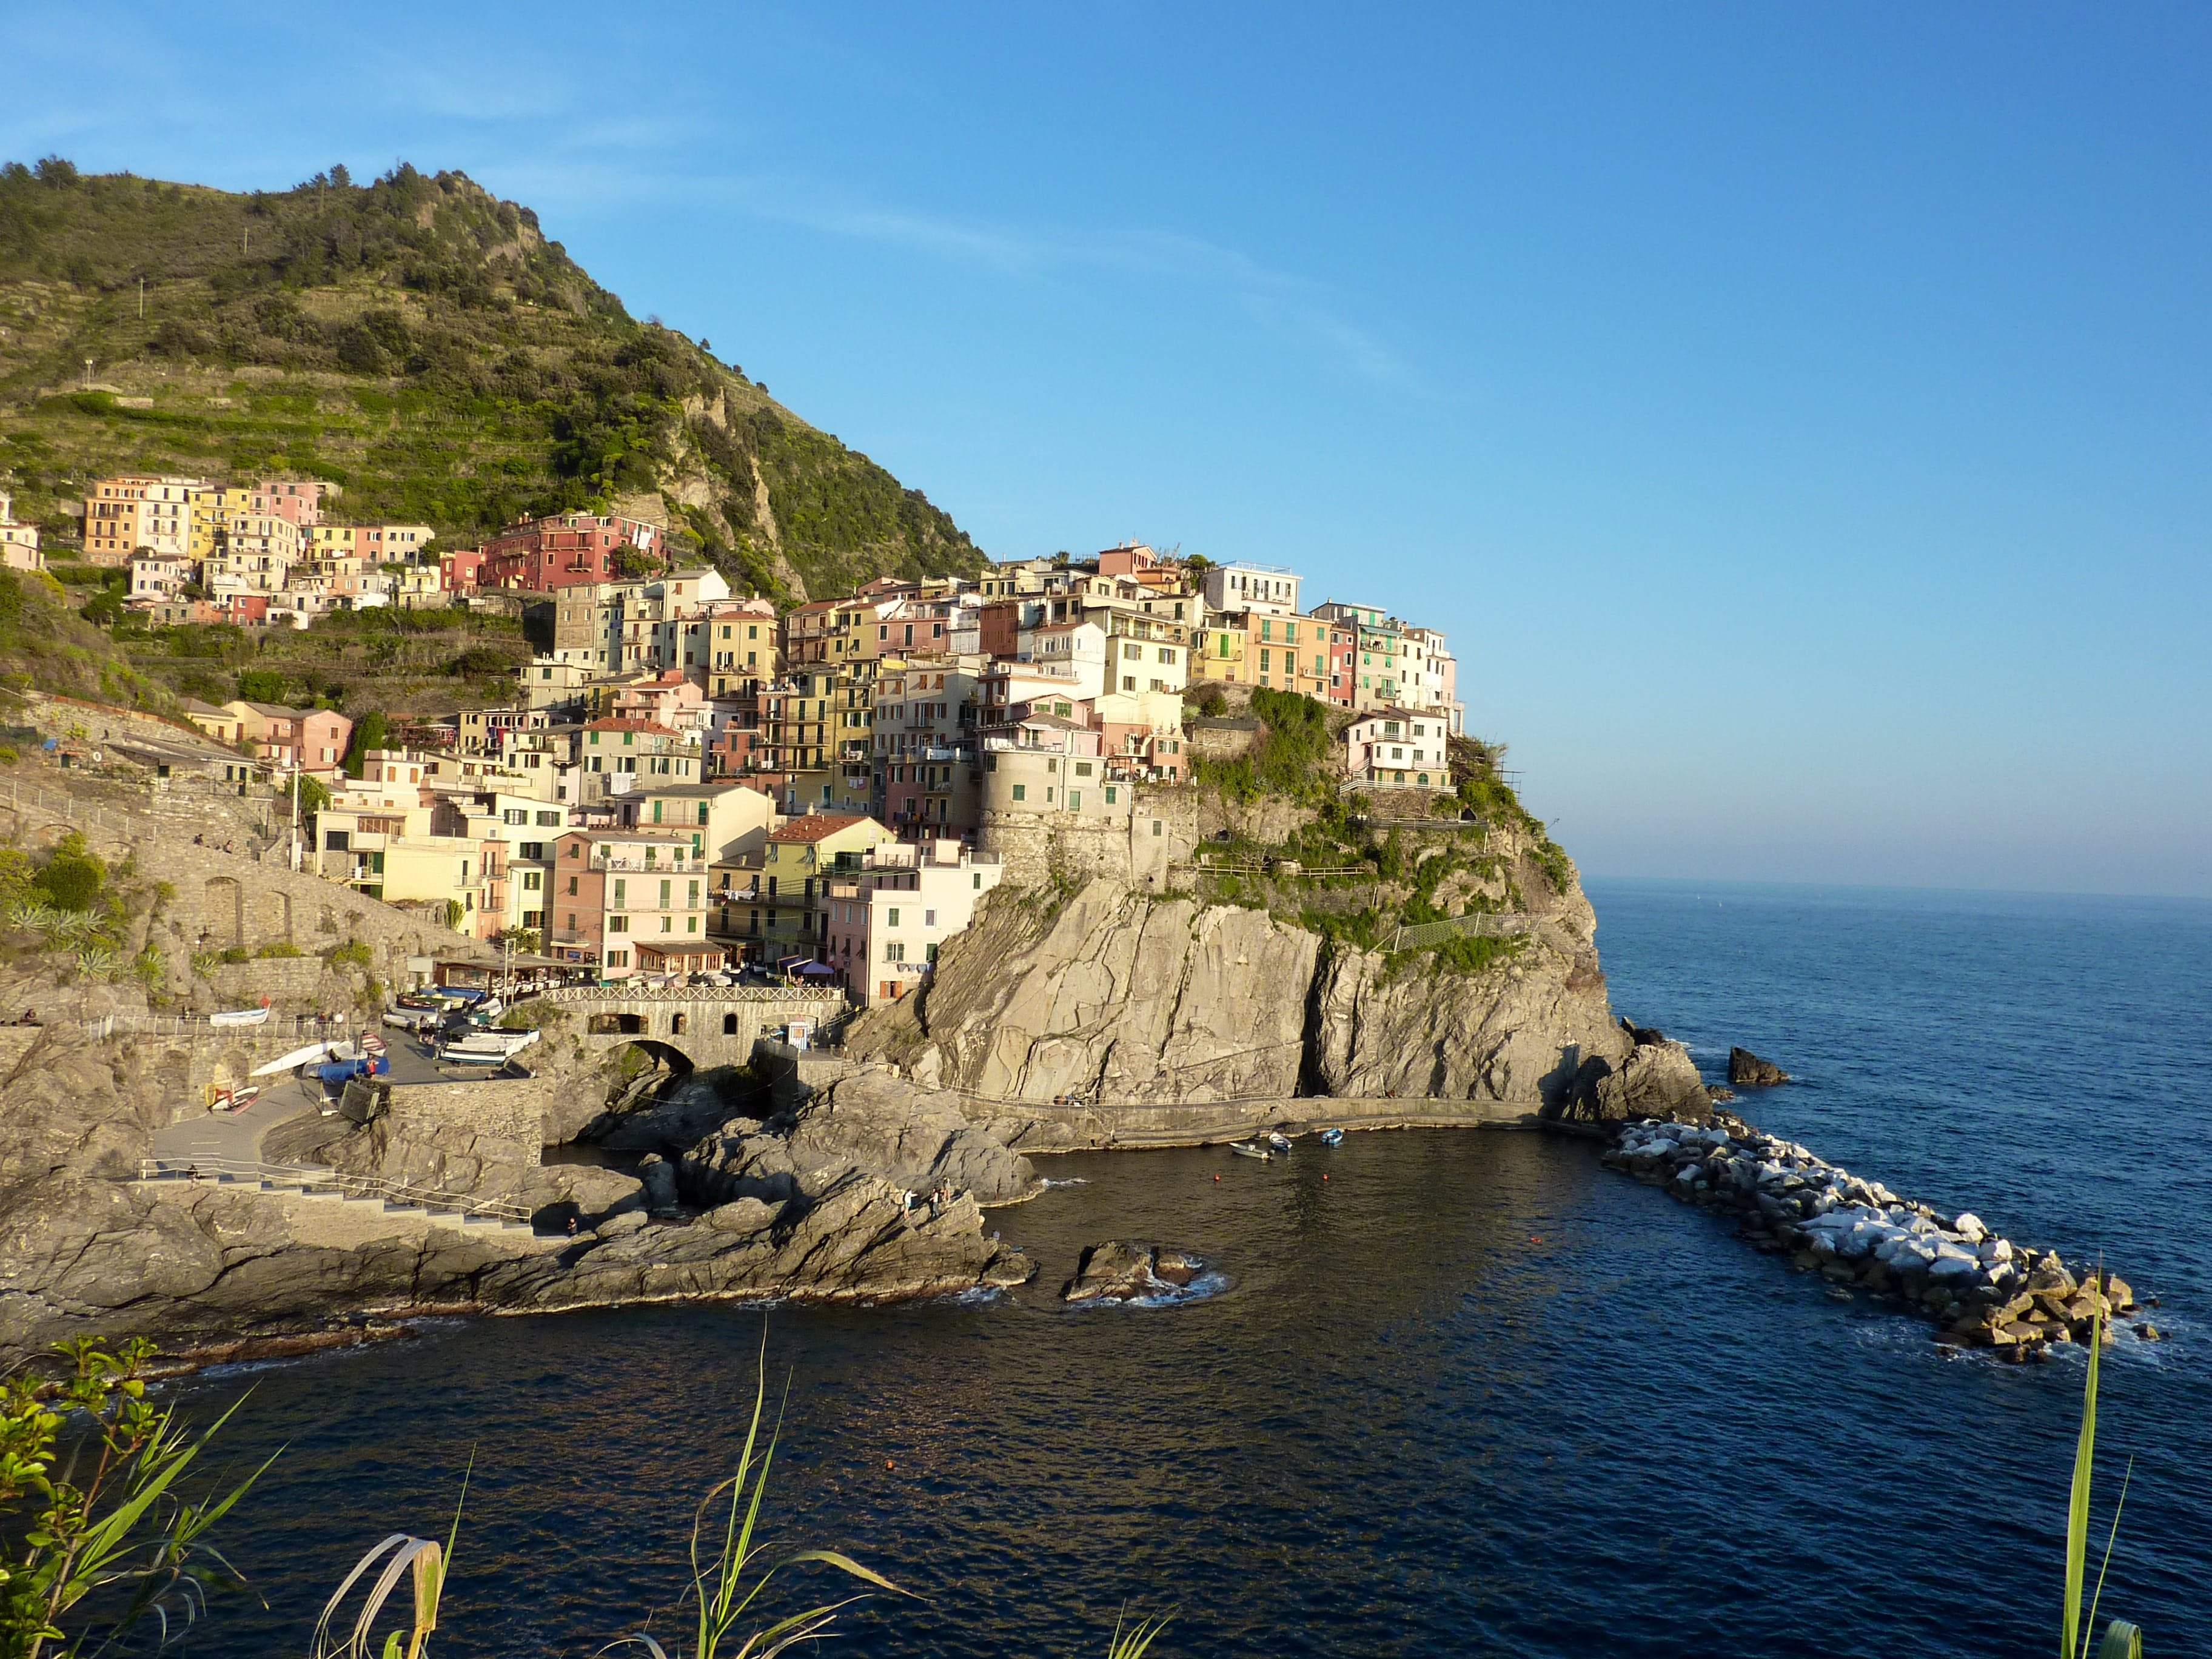 Explore Manarola in Cinque Terre: Places to Hike and Visit on cinque terre italy map, monterosso al mare, ravello italy map, cortona italy map, positano italy map, amalfi coast italy map, portovenere italy map, tyrol italy map, urbino italy map, cinco de terre italy map, portofino italy map, cinque terre, italy, italian riviera map, bogliasco italy map, riomaggiore italy map, italian riviera, vernazza italy map, province of la spezia, la spezia, montepulciano italy map, capri italy map, lavagna italy map, mantua italy map, castellana grotte italy map,